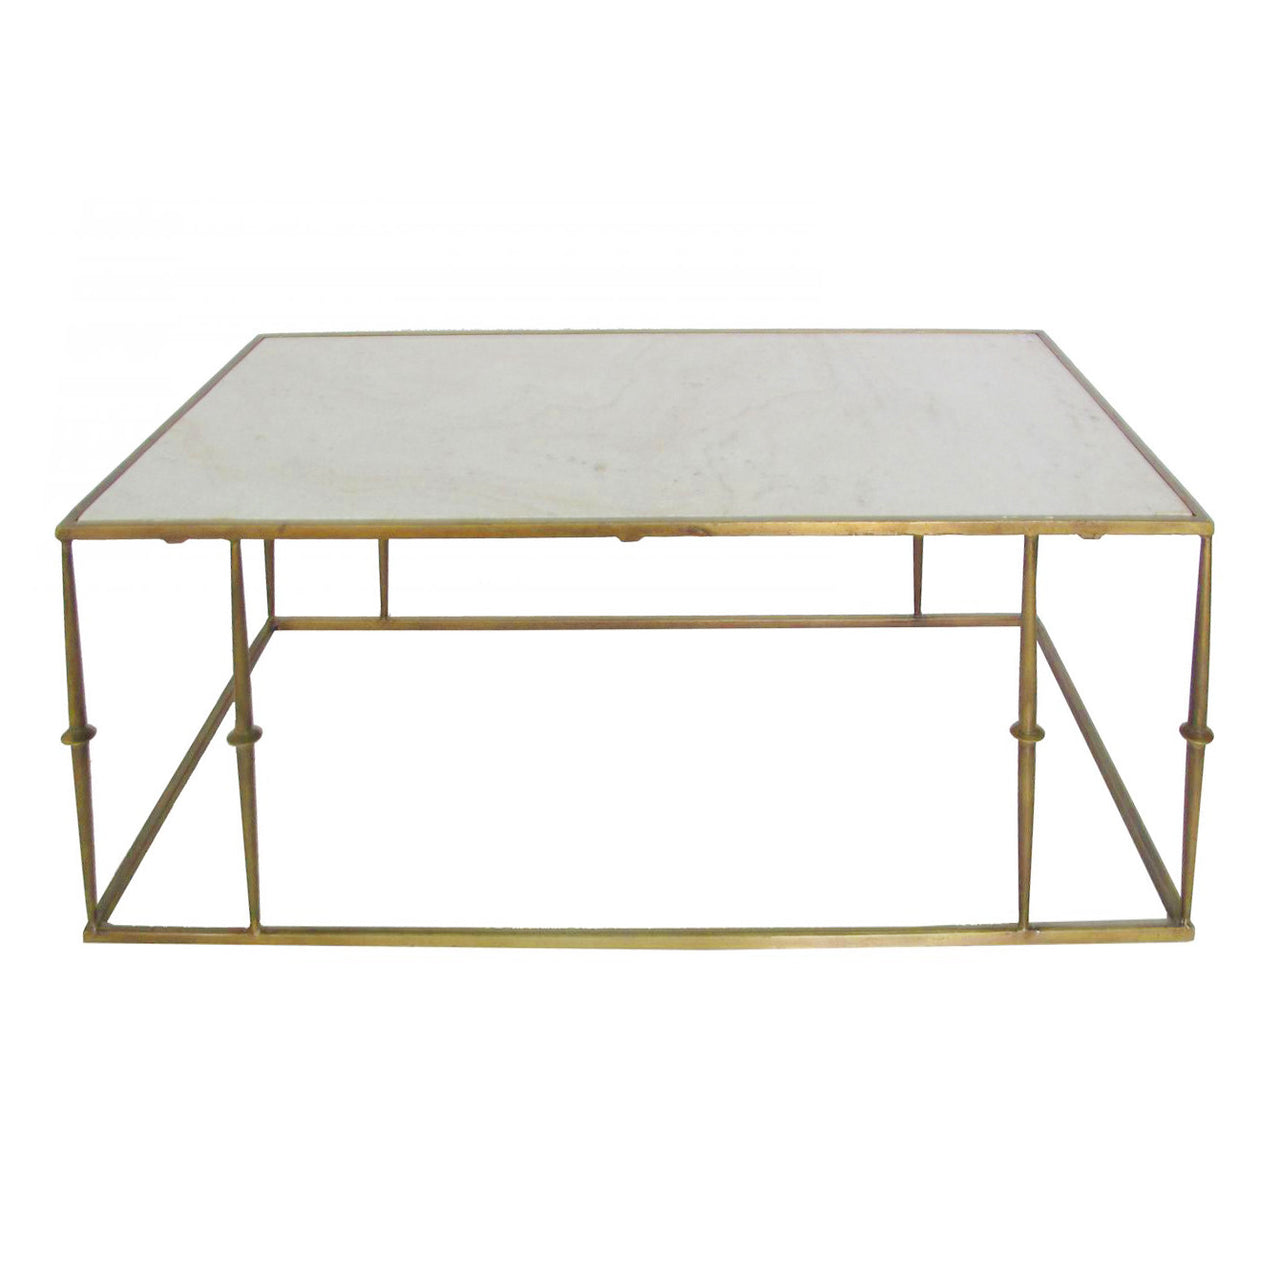 Klein Marble Coffee Table: Marble Top Coffee Table